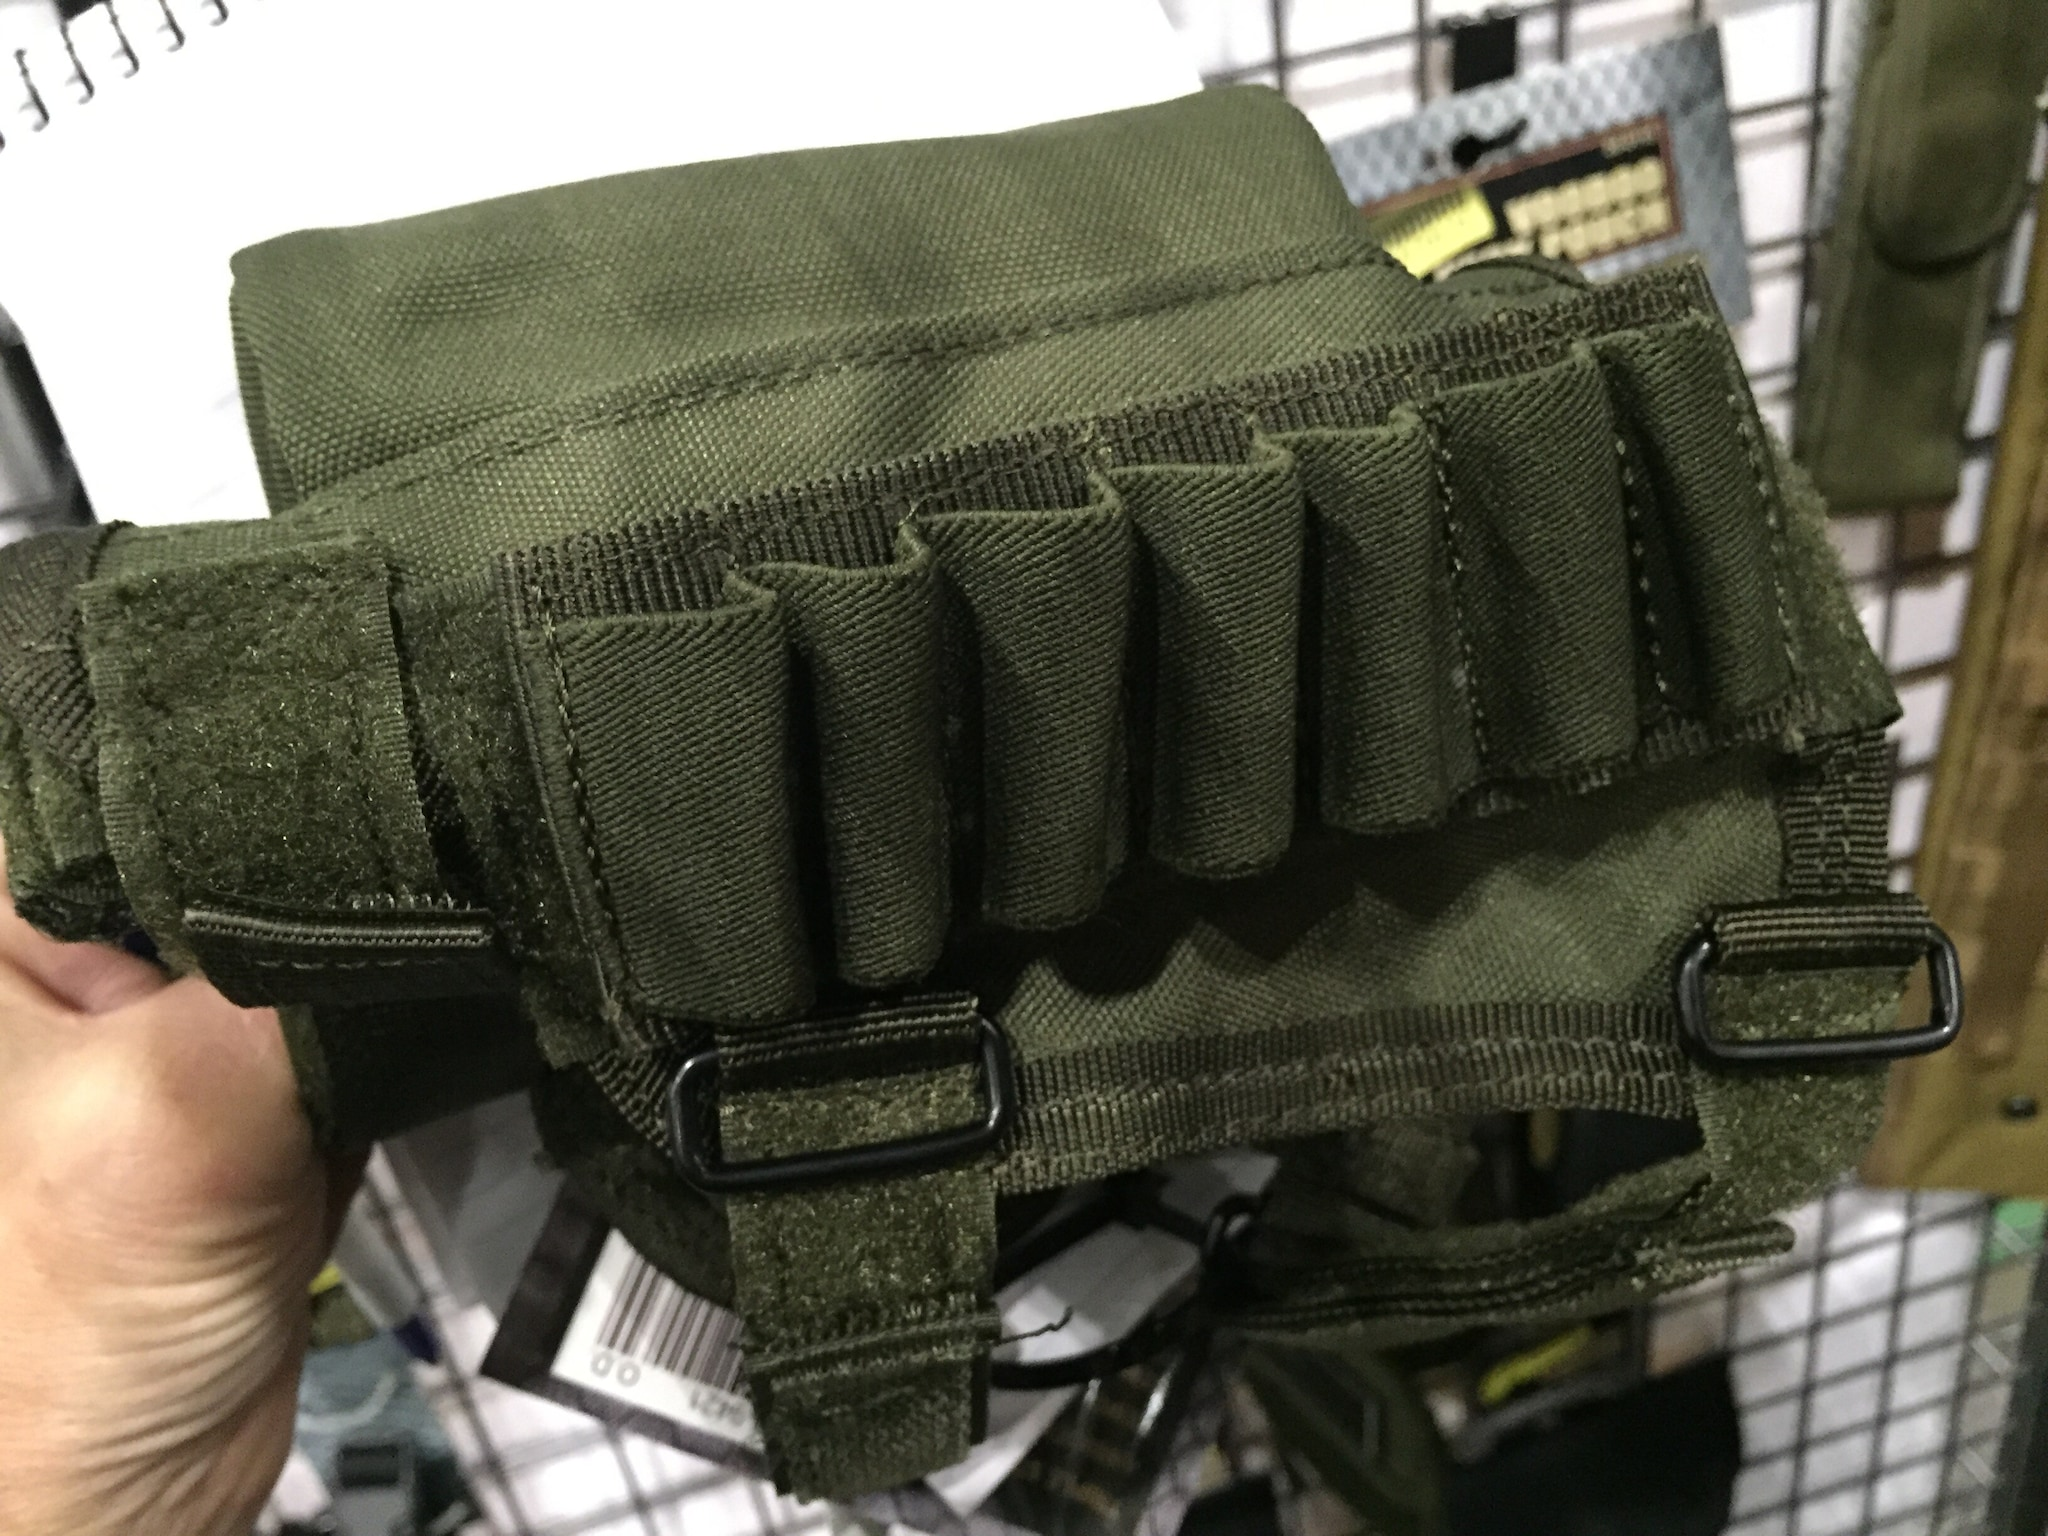 Struggling with cheek weld? Voodoo Tactical has this ambi cheek pad with both ammo and whatnot storage.